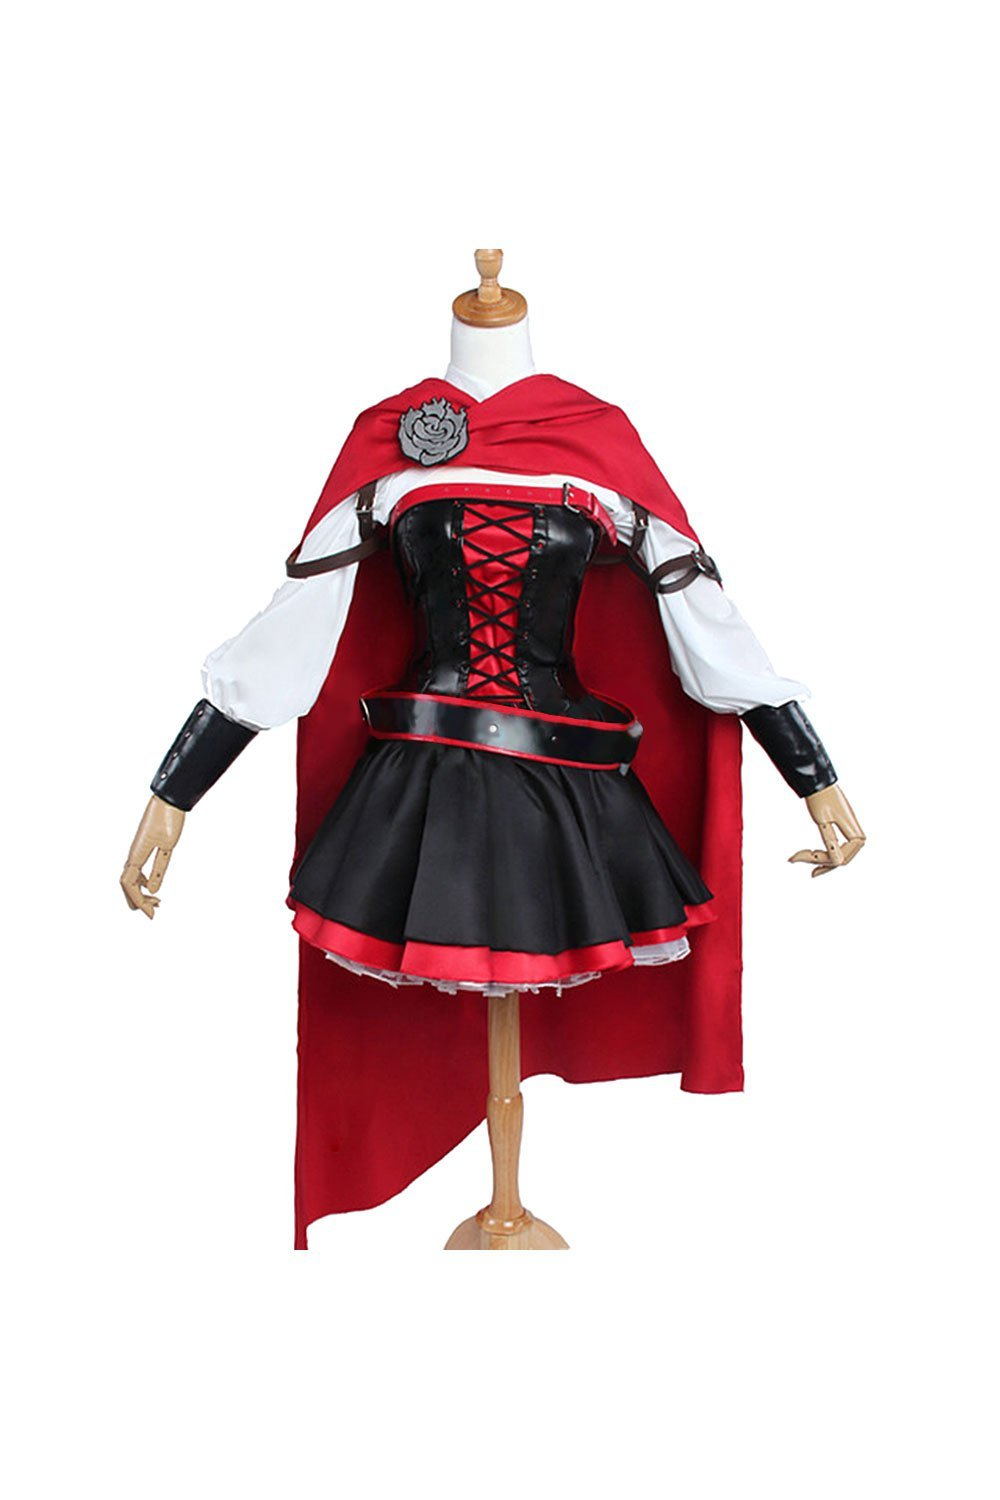 RWBY 3 Ruby Rose Battler Vestido Cosplay Disfraz